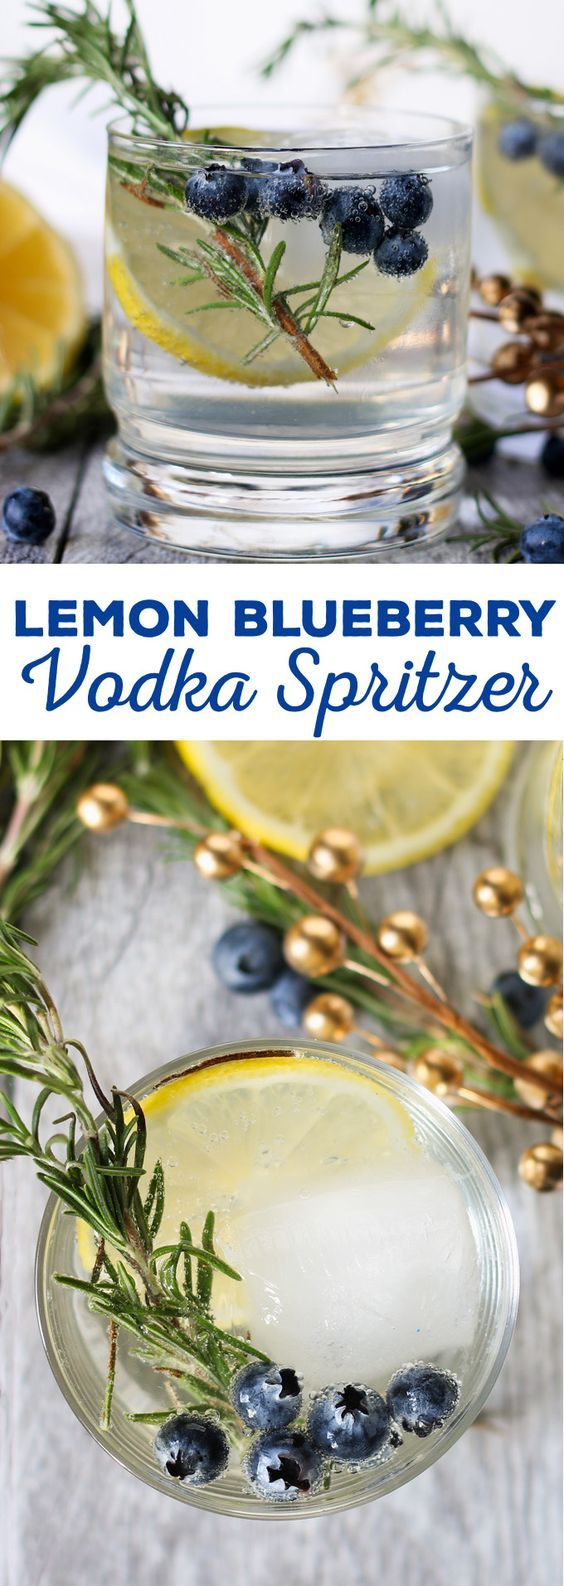 This lemon blueberry vodka spritzer is perfect for holiday parties, weekend brunches or girl's nights. If you are searching for a signature drink, your search is over thanks to this easy cocktail recipe! | honeyandbirch.com #SparklingHolidays #ad @DASANI Water